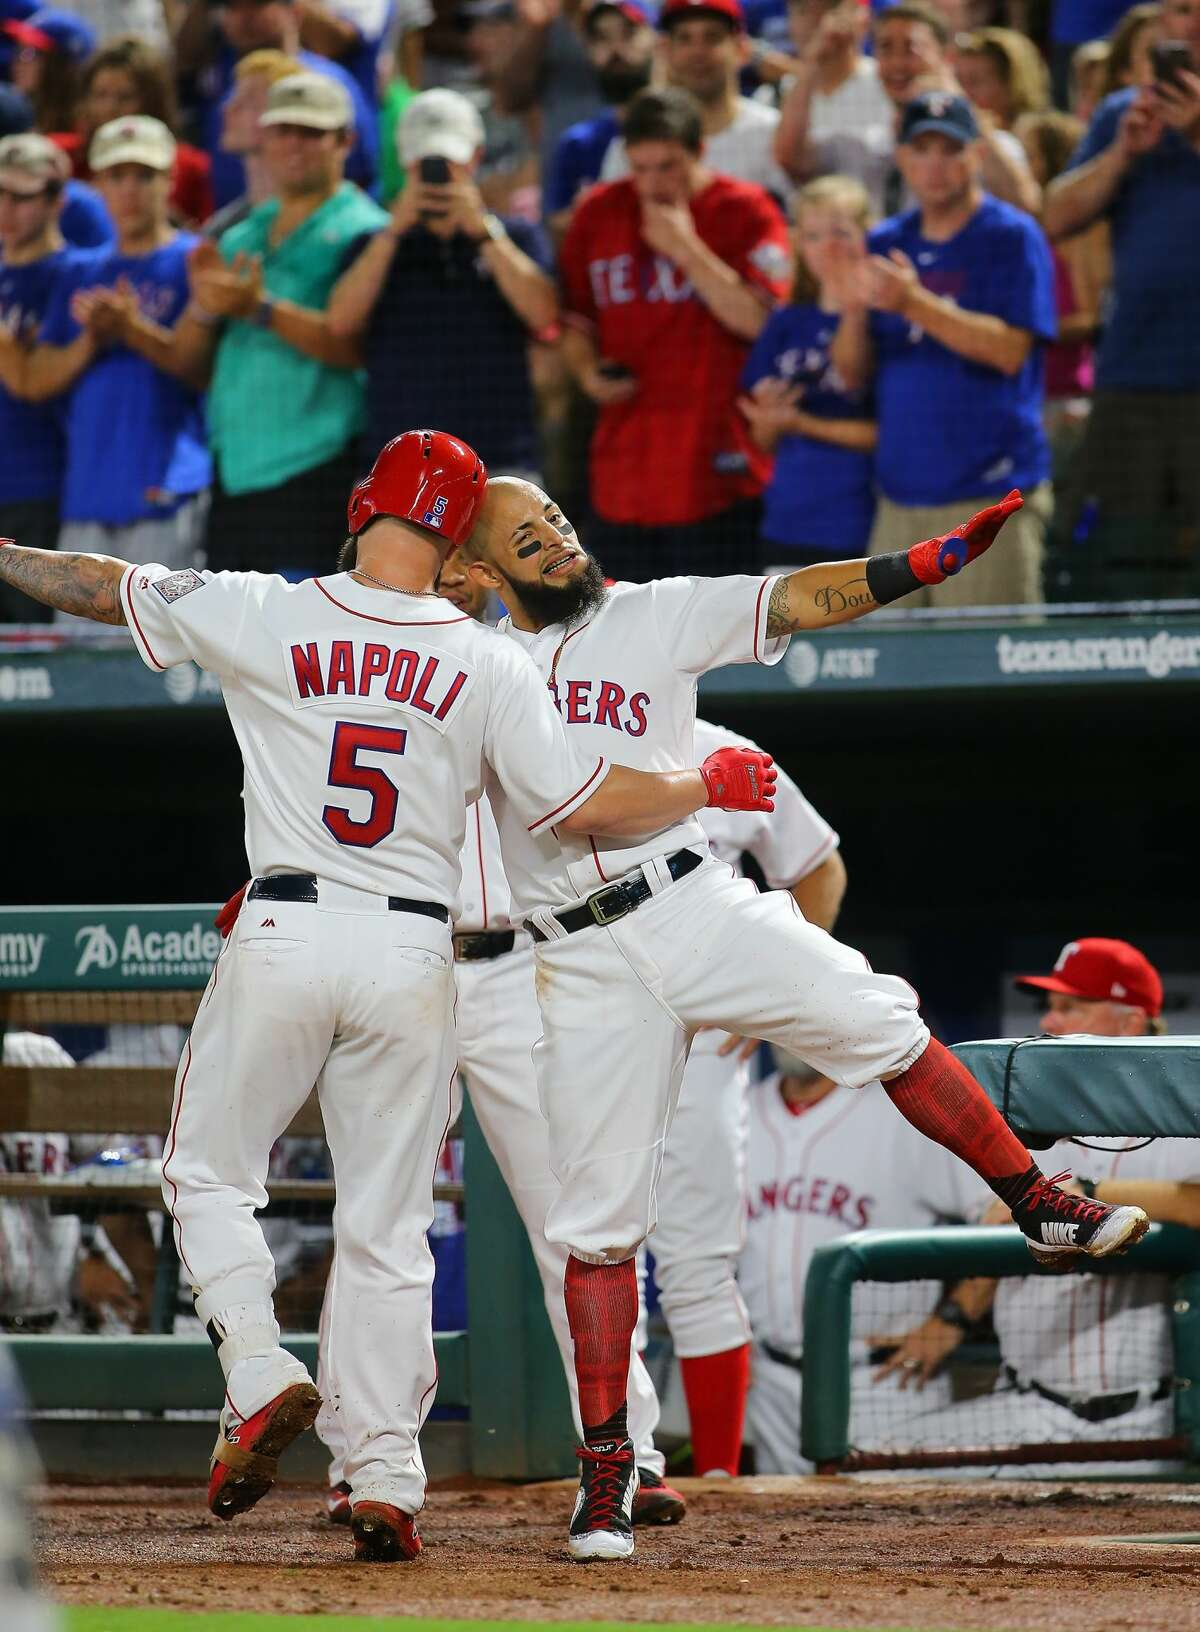 ARLINGTON, TX - AUGUST 12: Rougned Odor #12 of the Texas Rangers and Mike Napoli #5 celebrate Napoli hitting a solo home run in the fourth inning against the Houston Astros at Globe Life Park in Arlington on August 12, 2017 in Arlington, Texas. (Photo by Rick Yeatts/Getty Images)